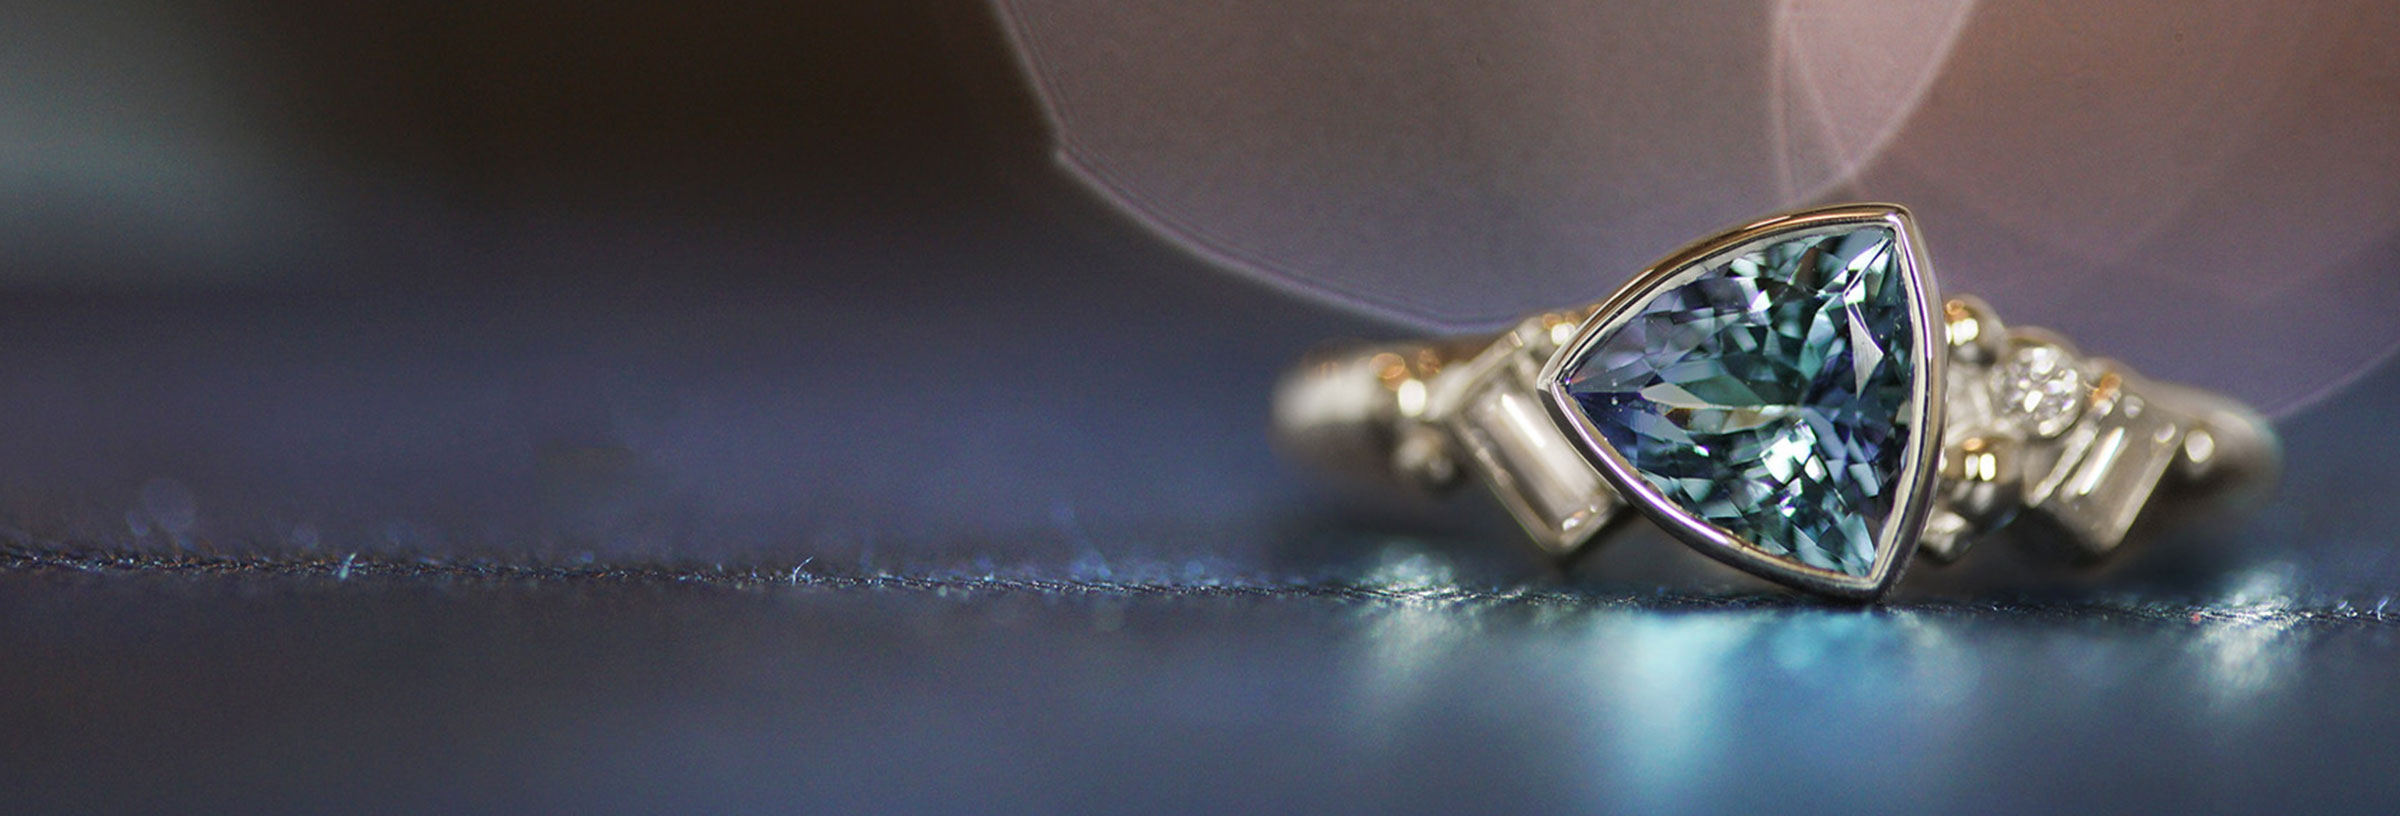 fairtrade-9-carat-white-gold-engagement-with-tanzanite-and-diamonds